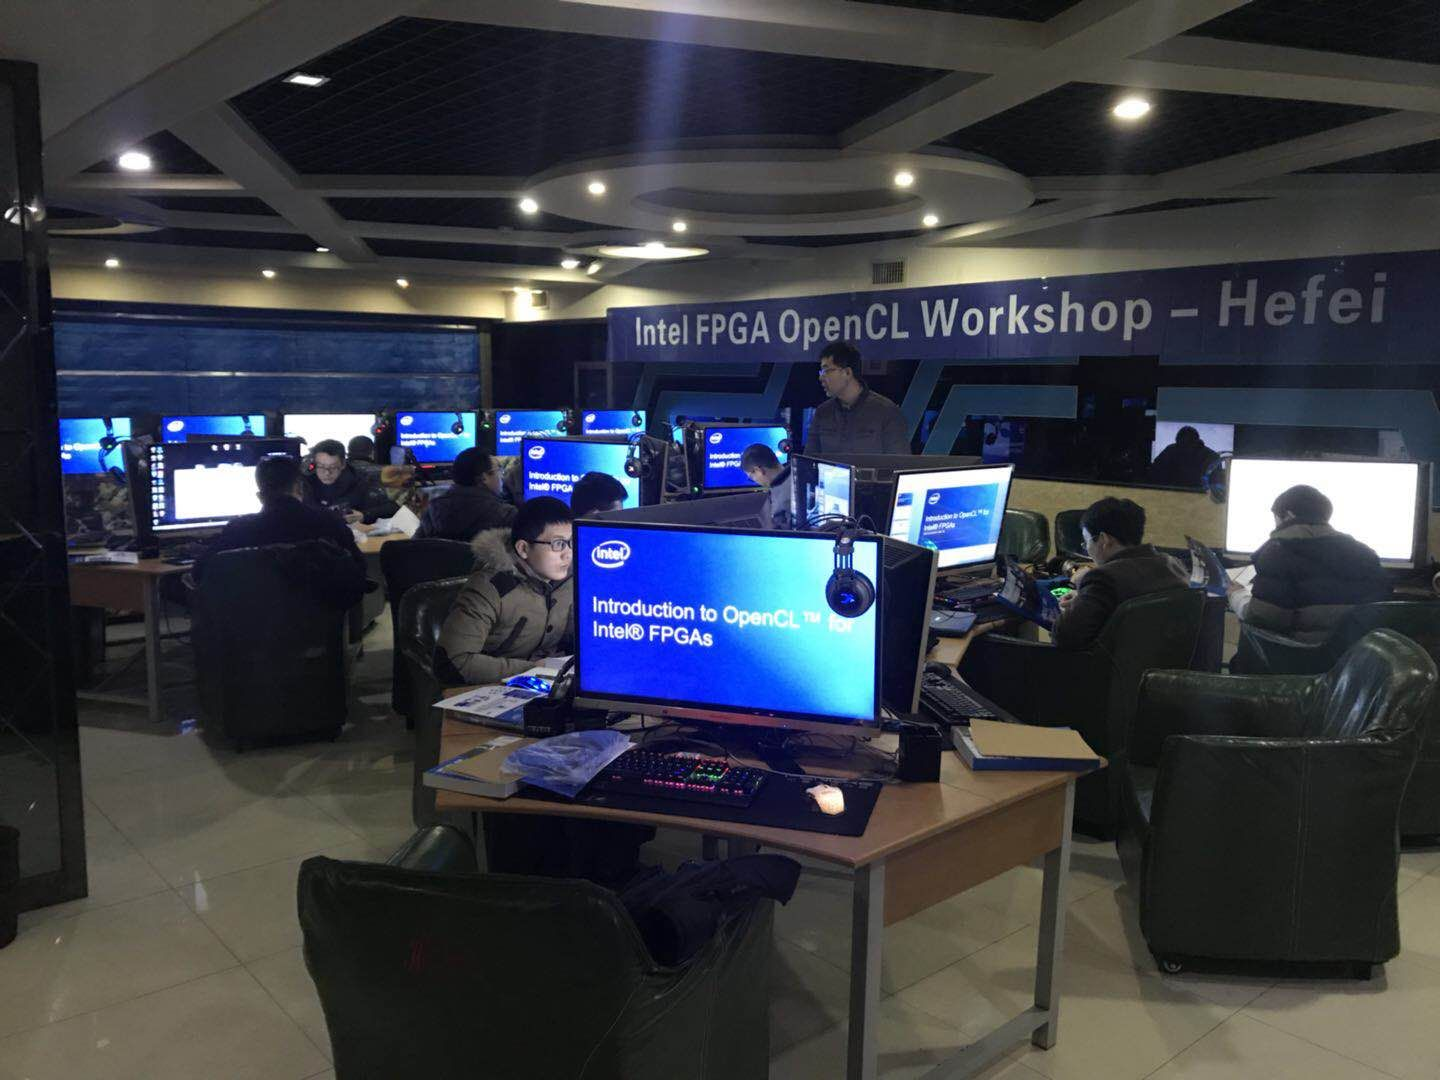 Intel OpenCL Workshop 一 Hefei